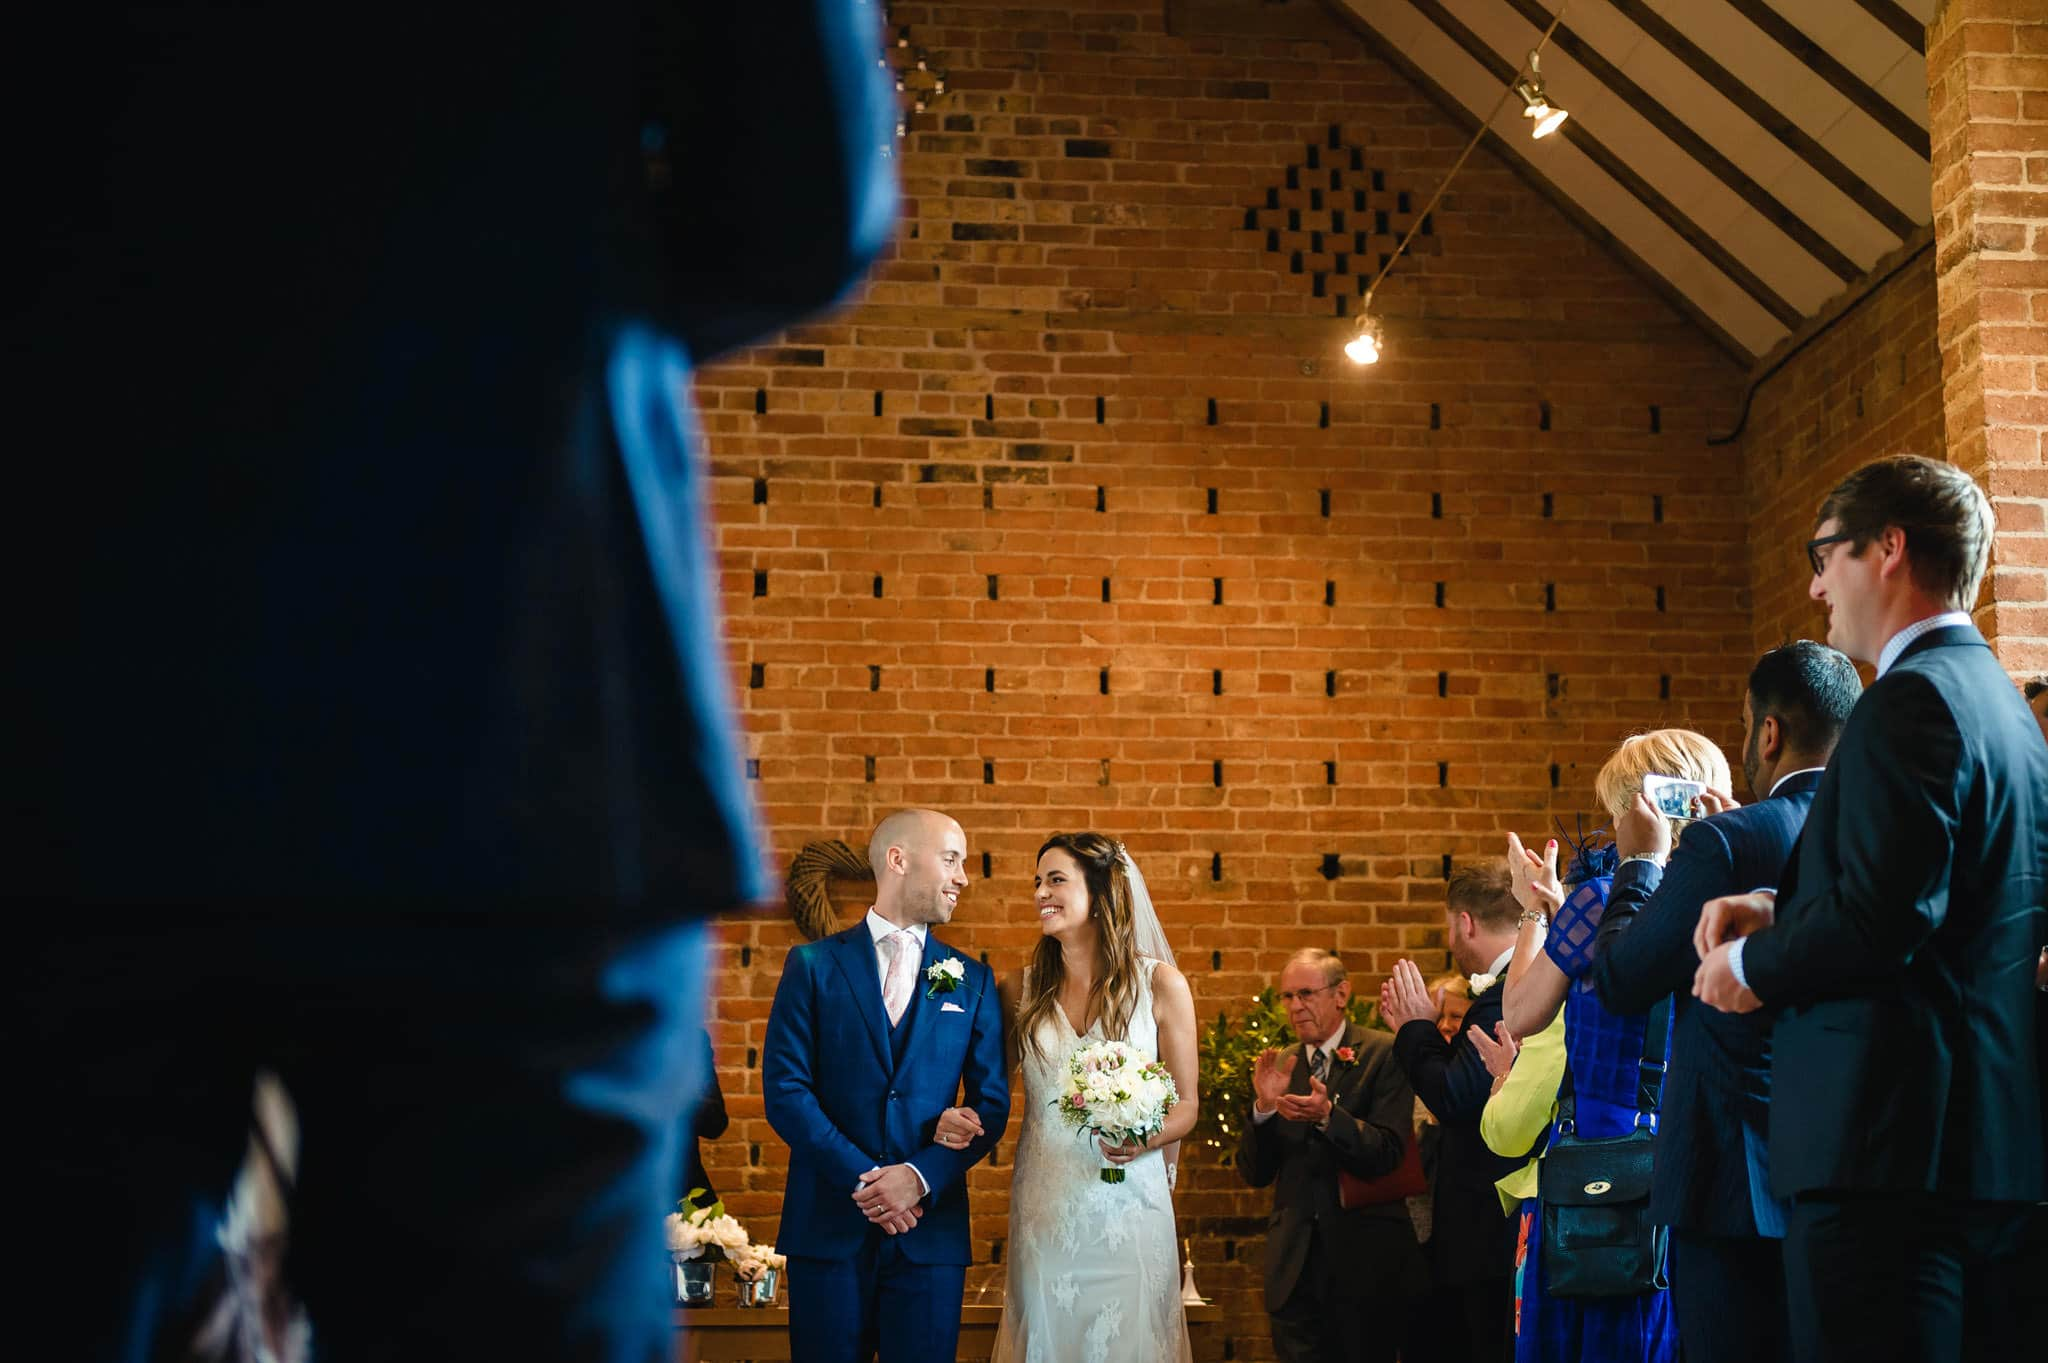 wedding at redhouse barn 78 - Wedding at Redhouse Barn in Stoke Prior, Worcestershire